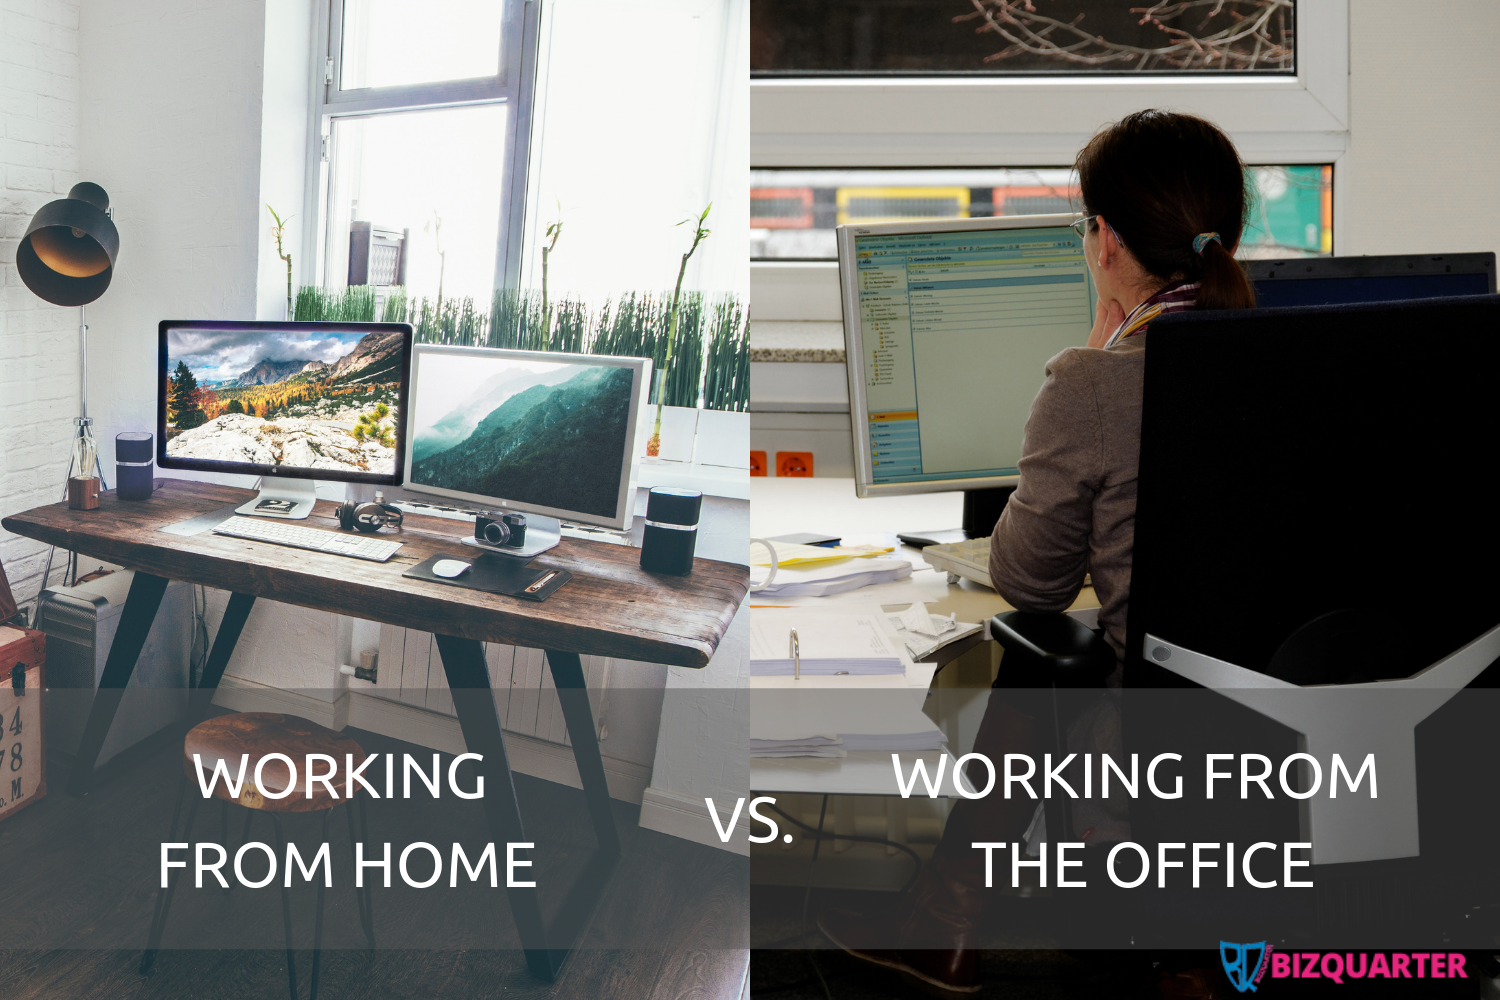 Working from home vs. working from the office: a comparison